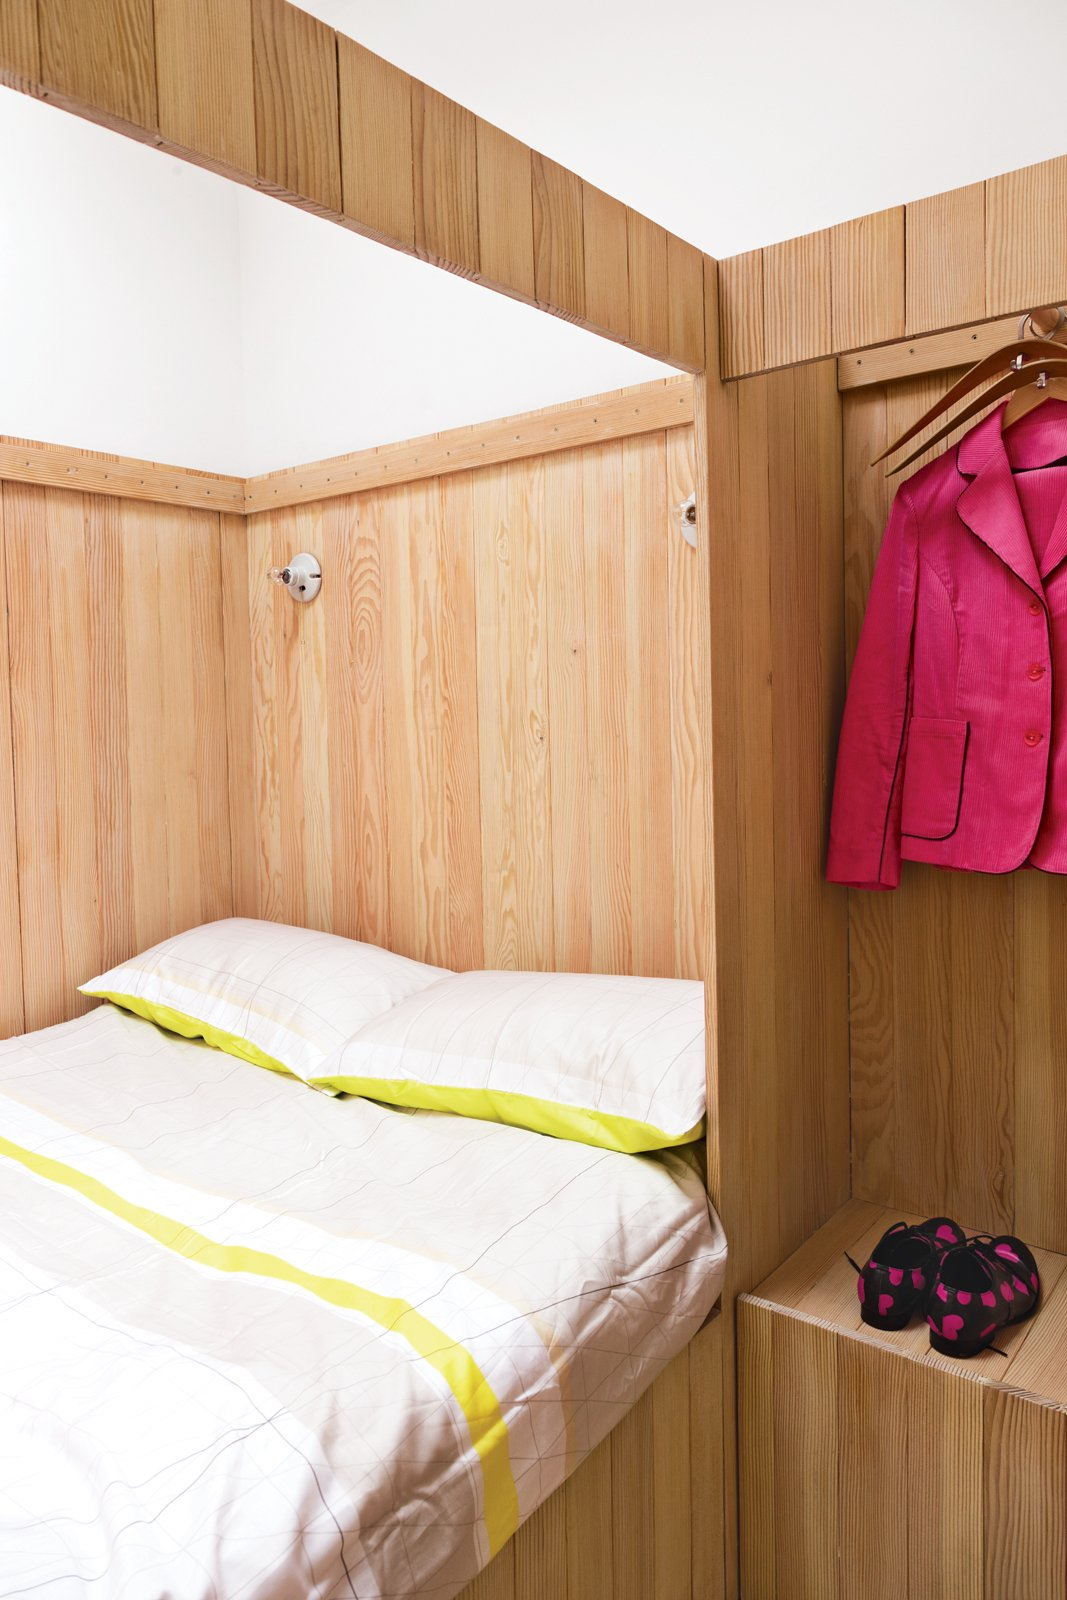 Bedroom, Bed, and Storage A closet is built into the bed frame in this London guesthouse. With hangers so close by, there's no excuse for not hanging up your clothes before bed. Photo by Ben Anders.  Photo 5 of 10 in A Colorful, Custom-Built Guesthouse in London